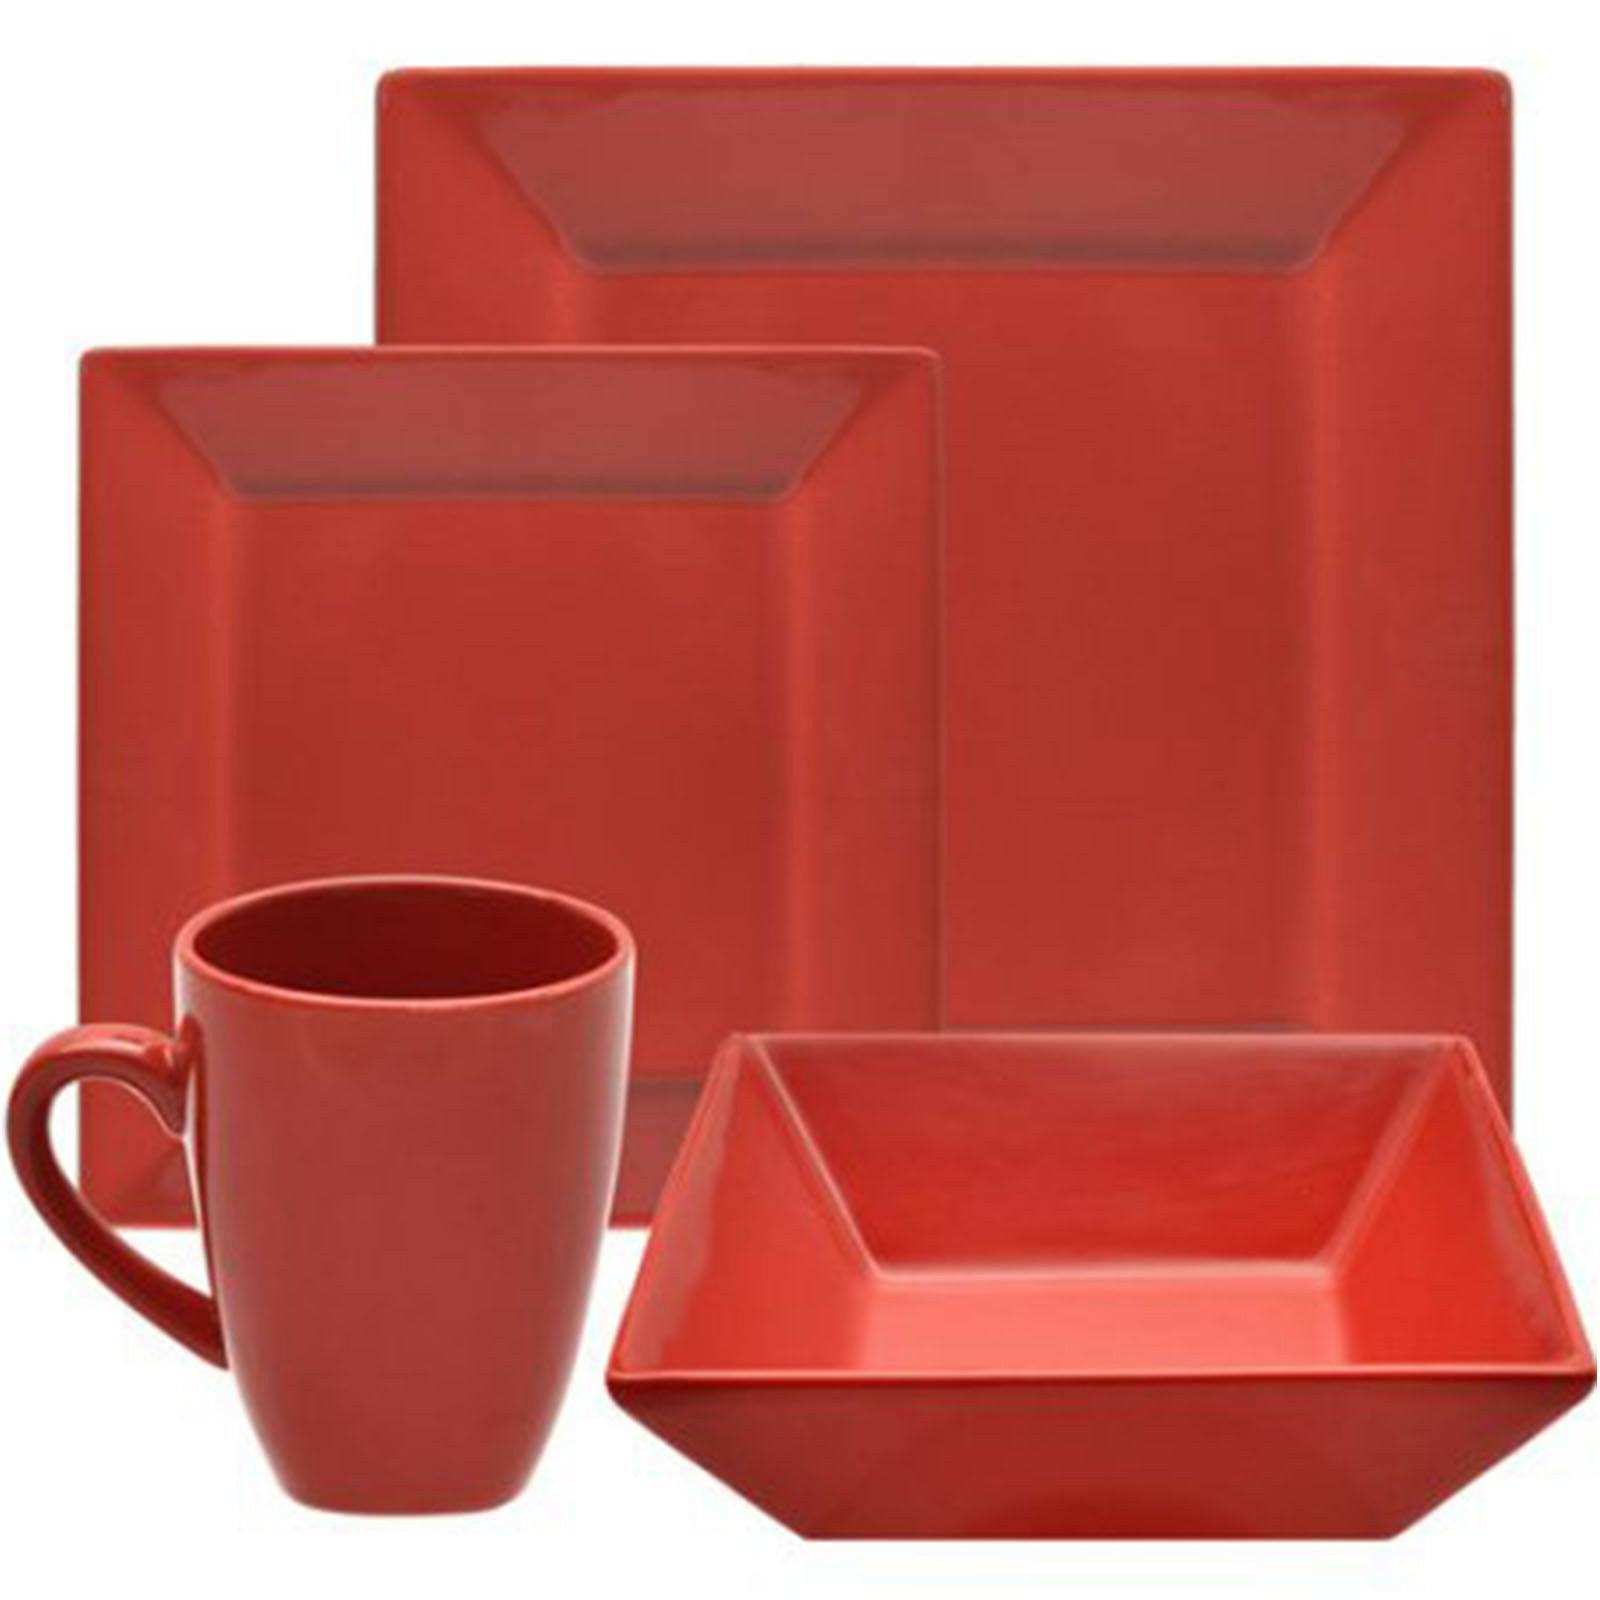 Dinnerware Set Square 16-Piece Dishes Bowls Dinner